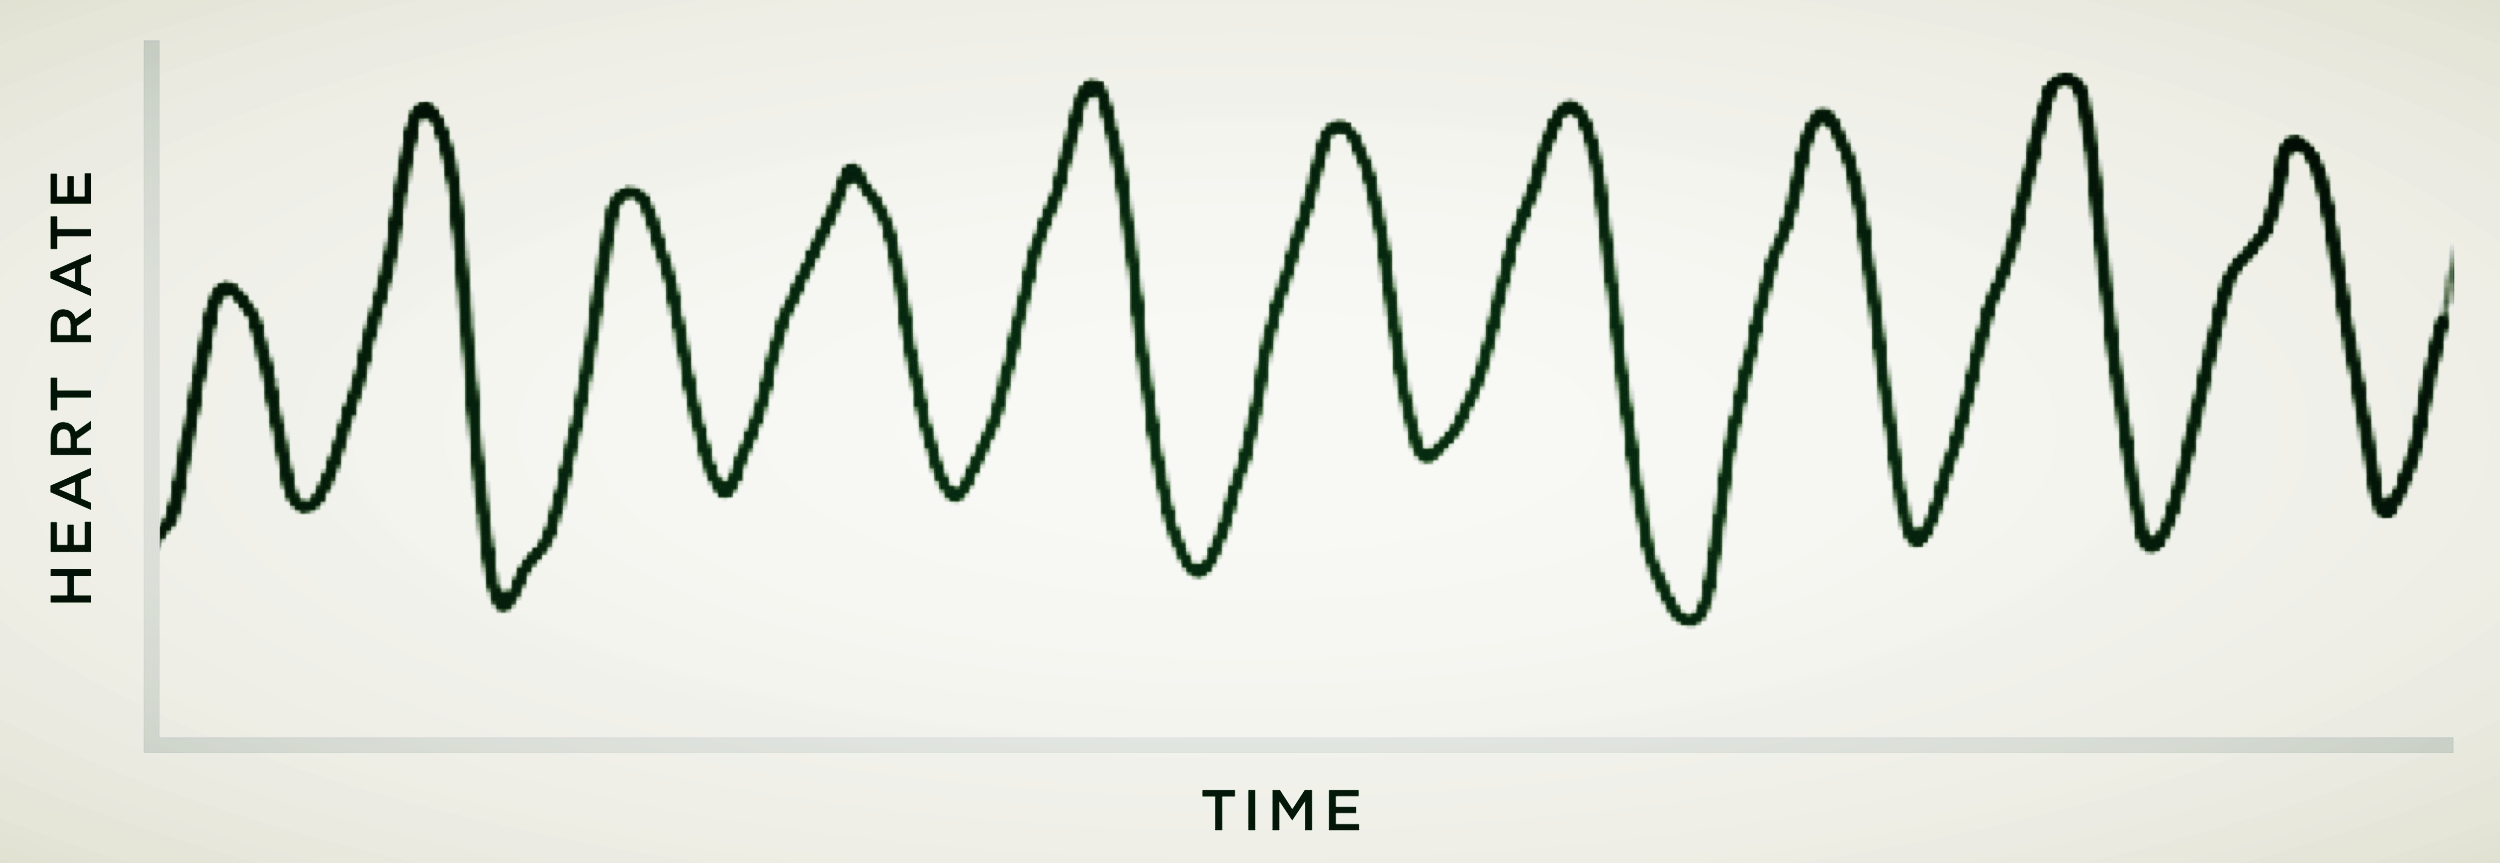 Coherent Heart Rhythm (during BreatheSync)